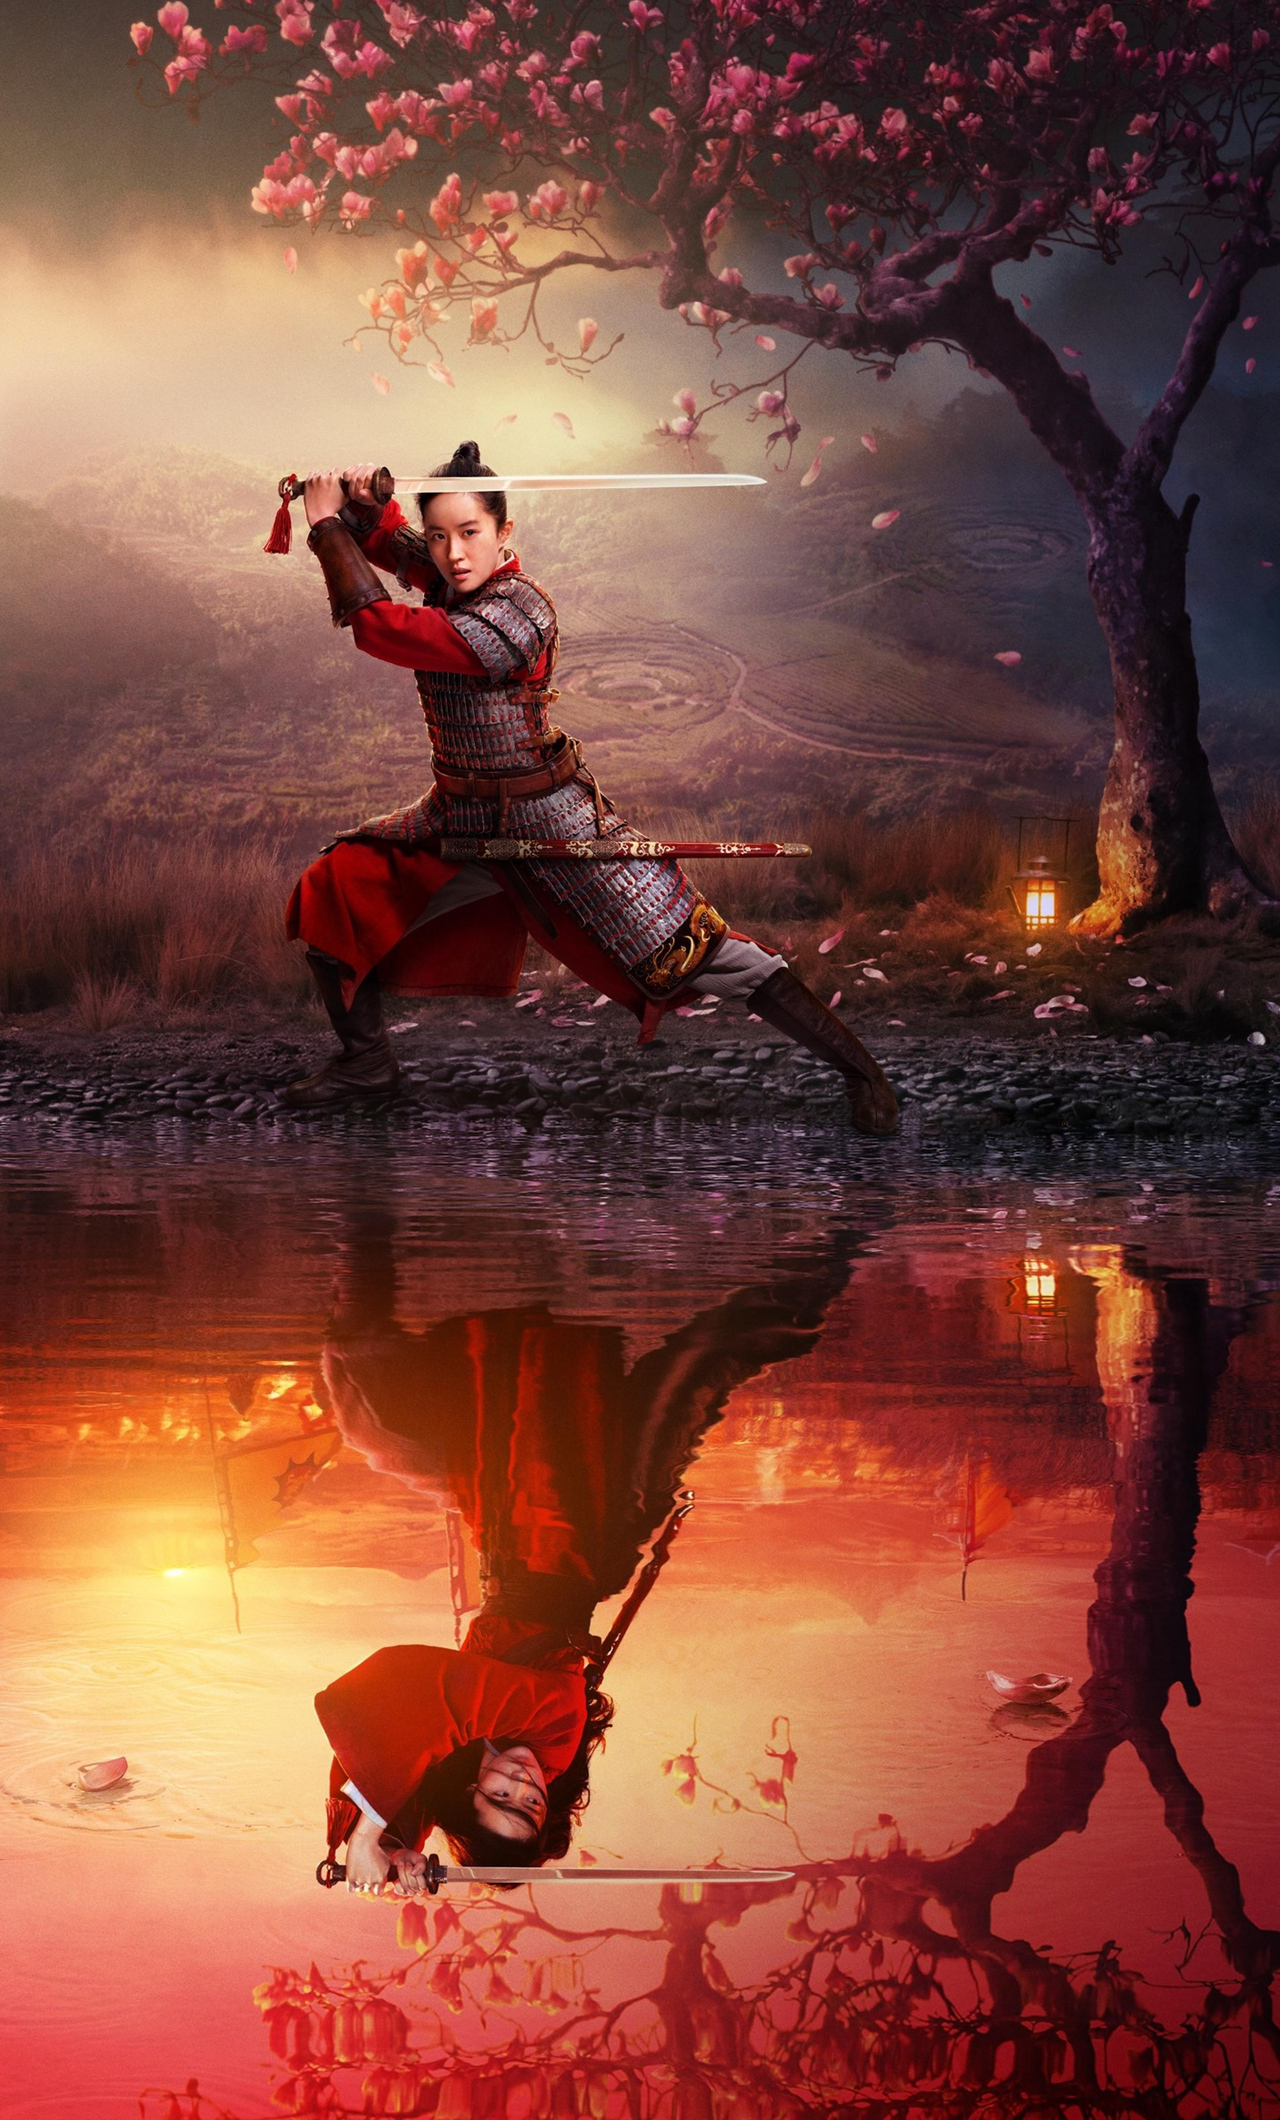 1280x2120 Mulan Movie 2020 Poster Iphone 6 Hd 4k Wallpapers Images Backgrounds Photos And Pictures